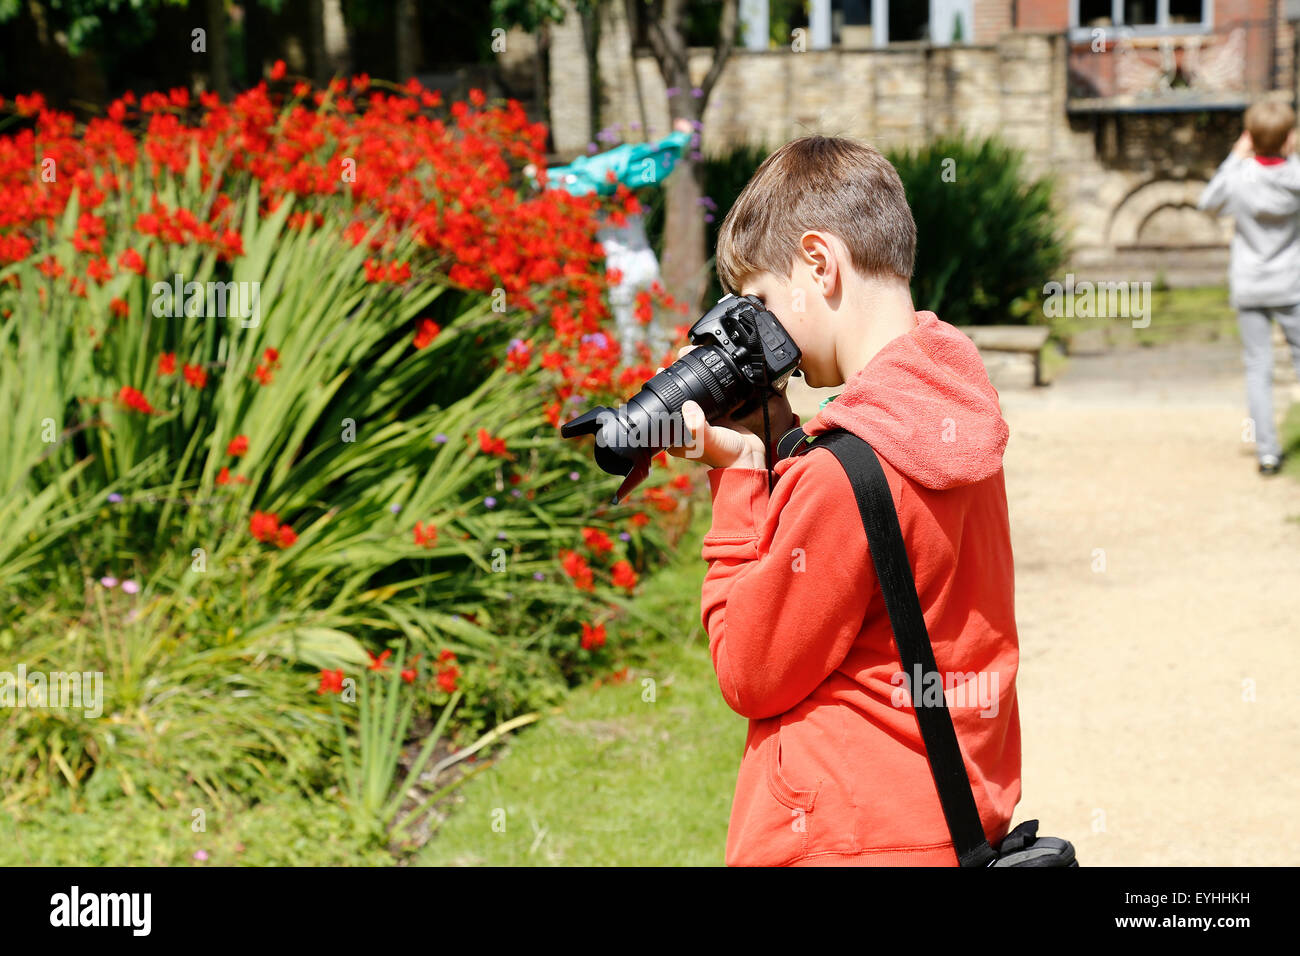 young boy taking a photograph of flowers in garden - Stock Image